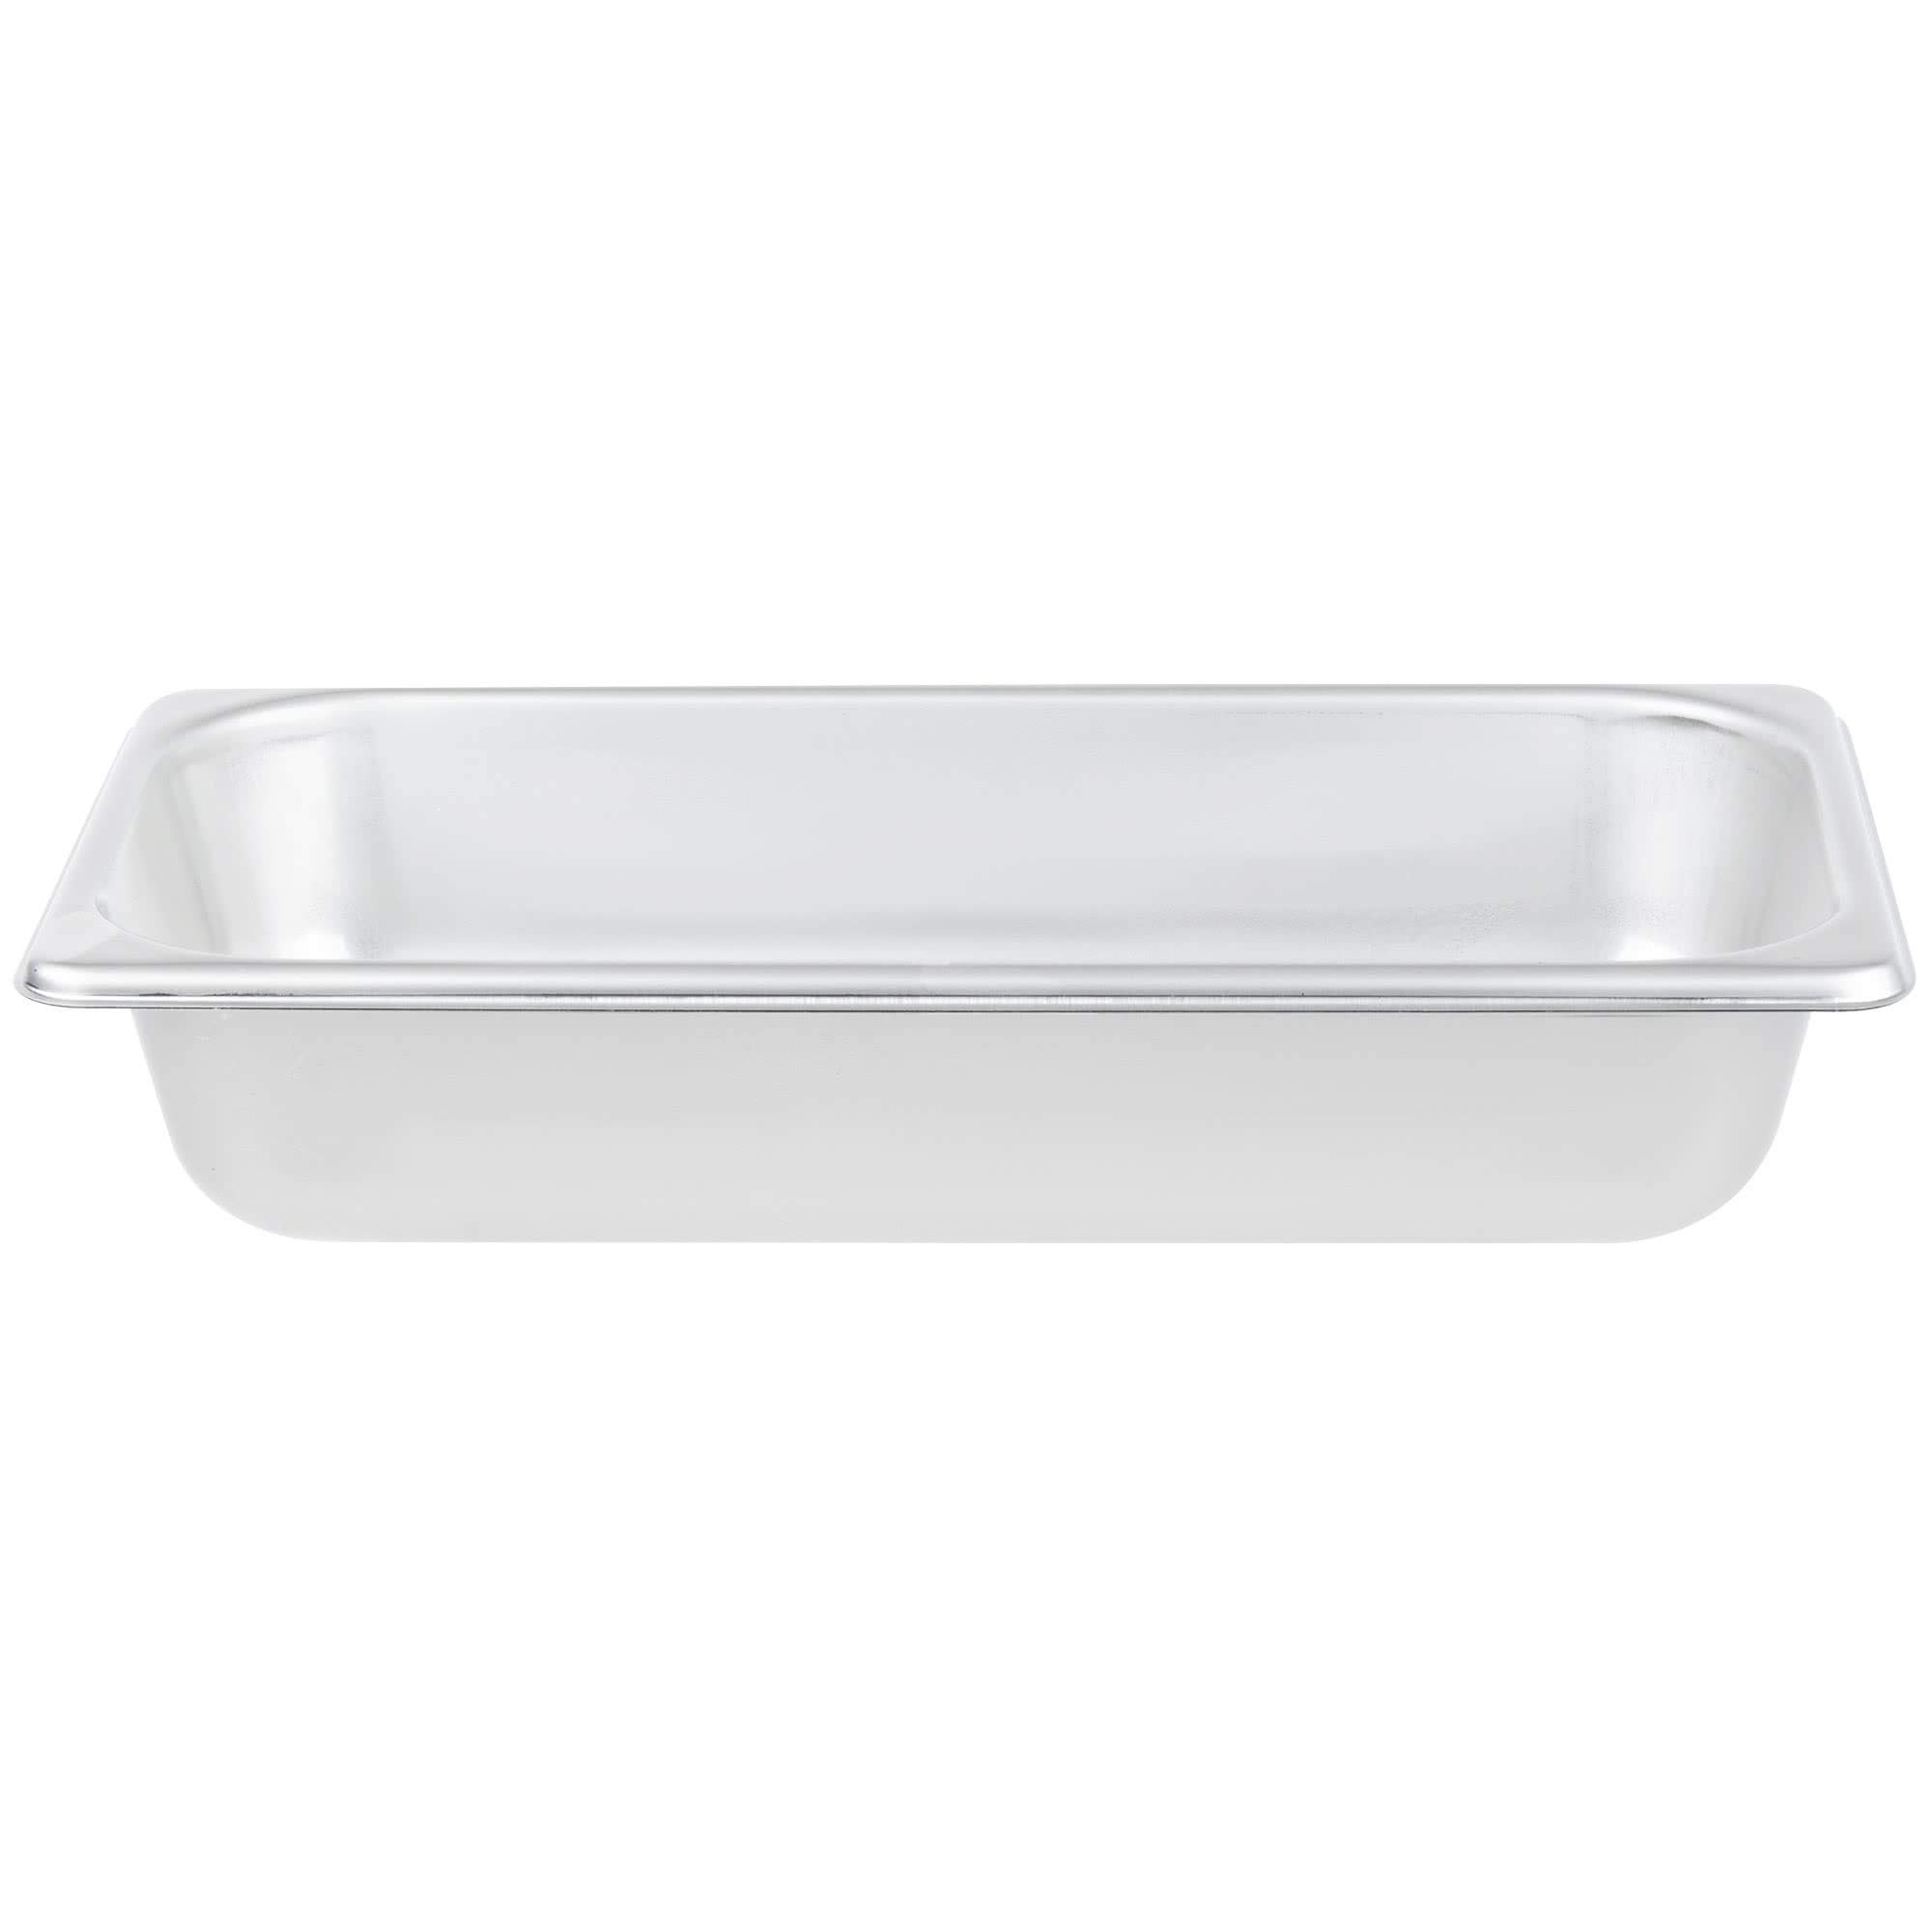 TableTop King S12062 Super Pan Heavy-Duty 1/3 Size Anti-Jam Stainless Steel Steam Table/Hotel Pan - 2 1/2'' Deep by TableTop King